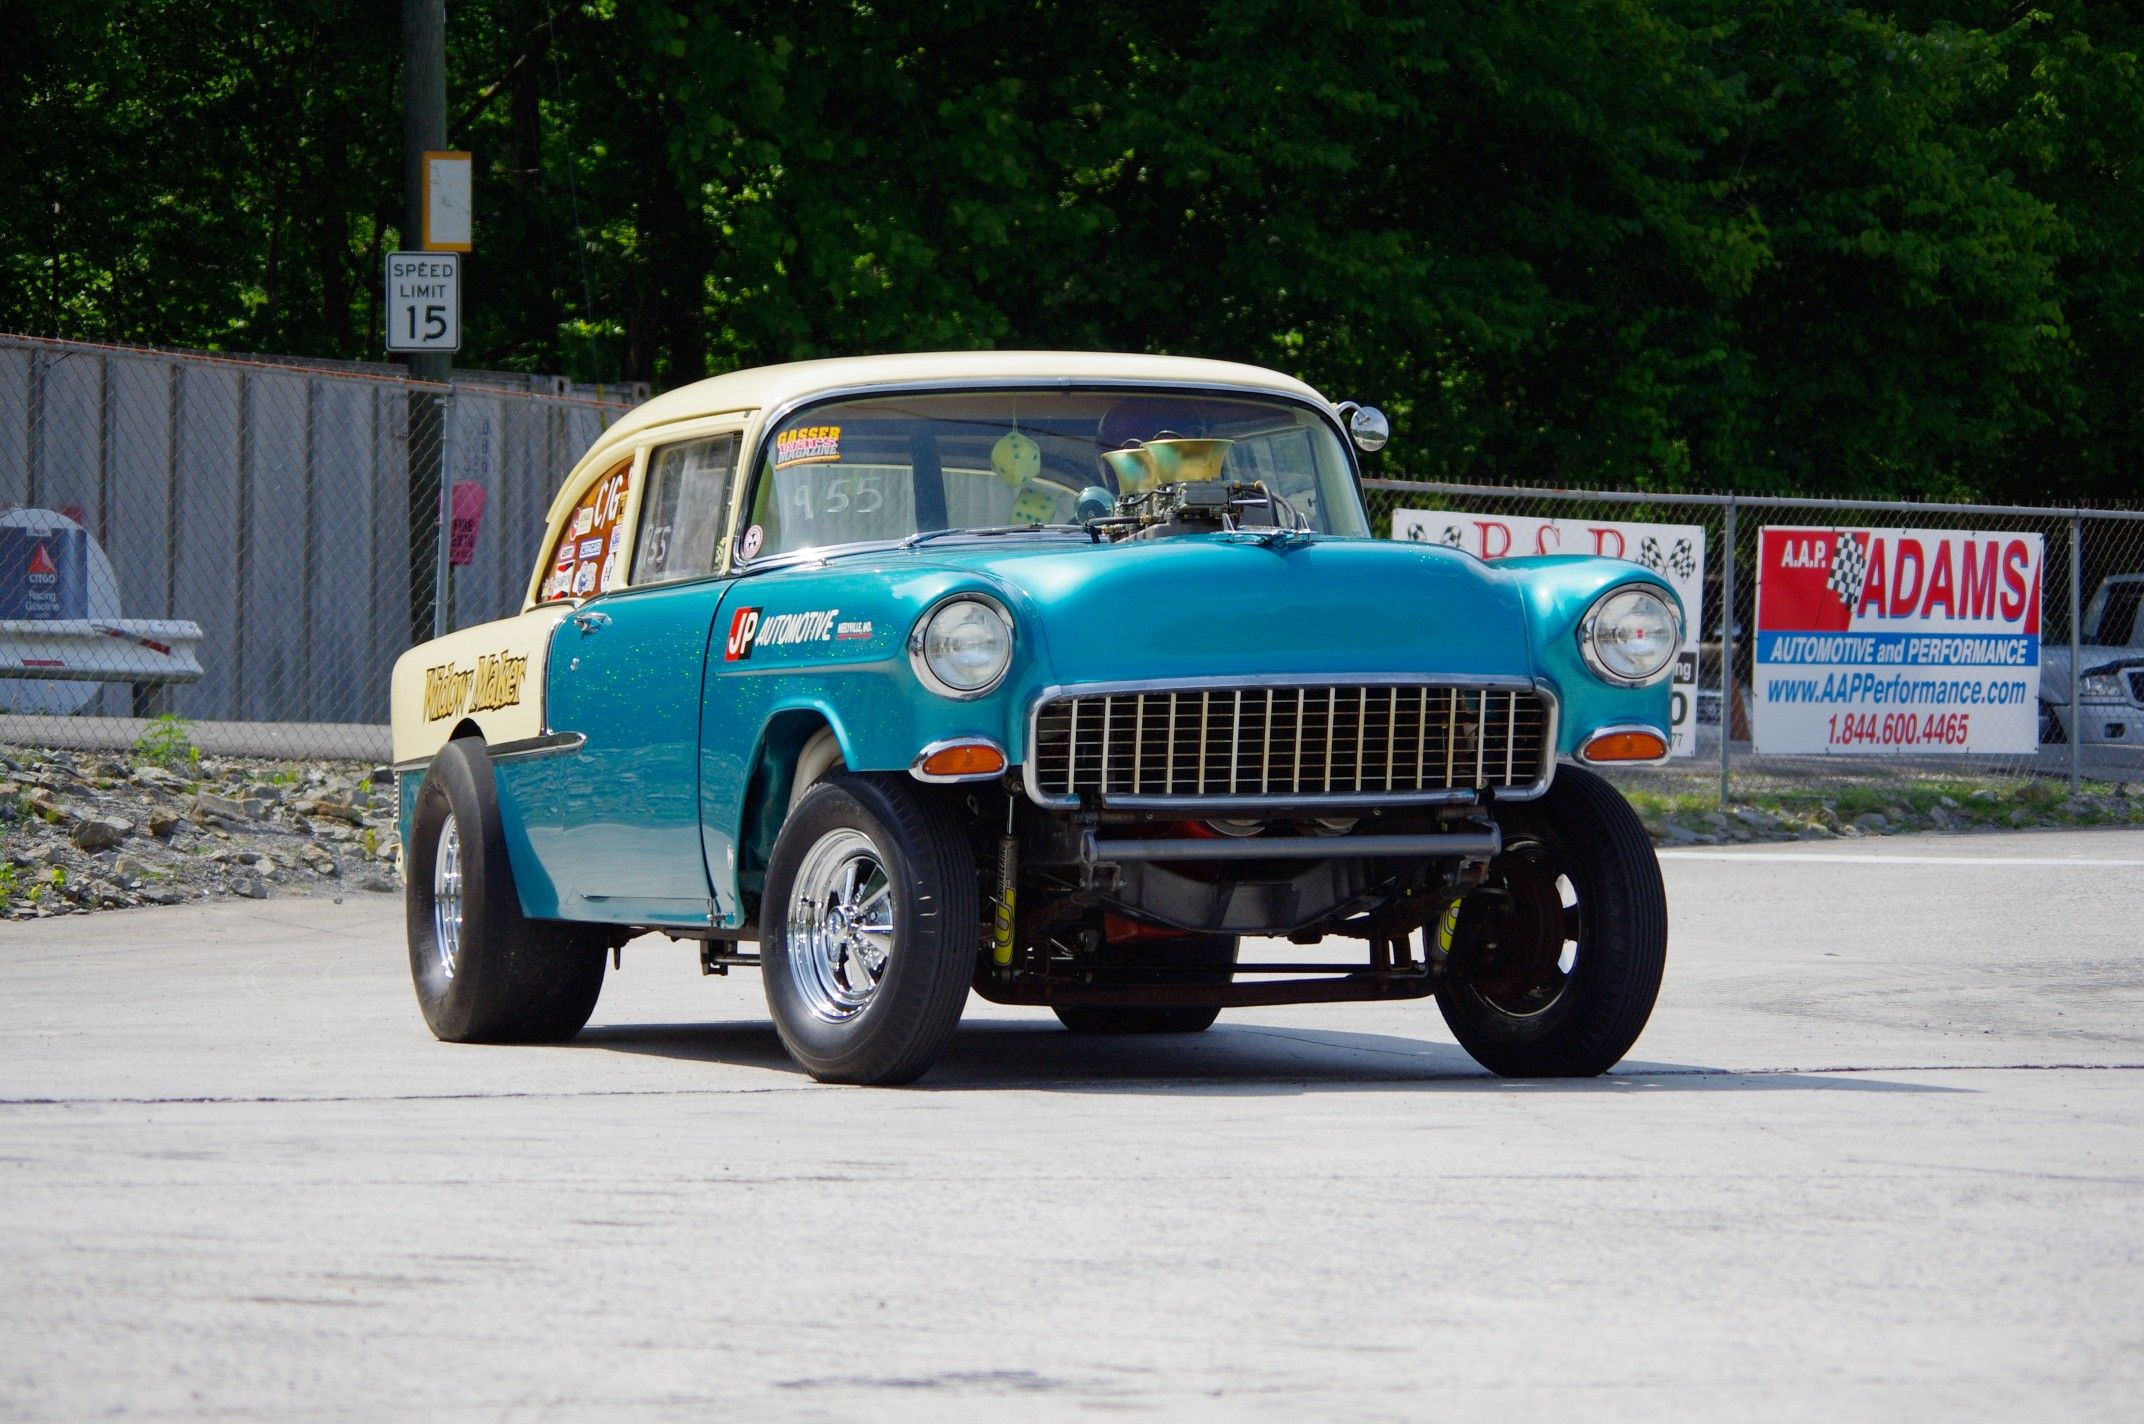 1955 Chevy Gasser Cool Chevys 1955 Chevy Cars Muscle Cars